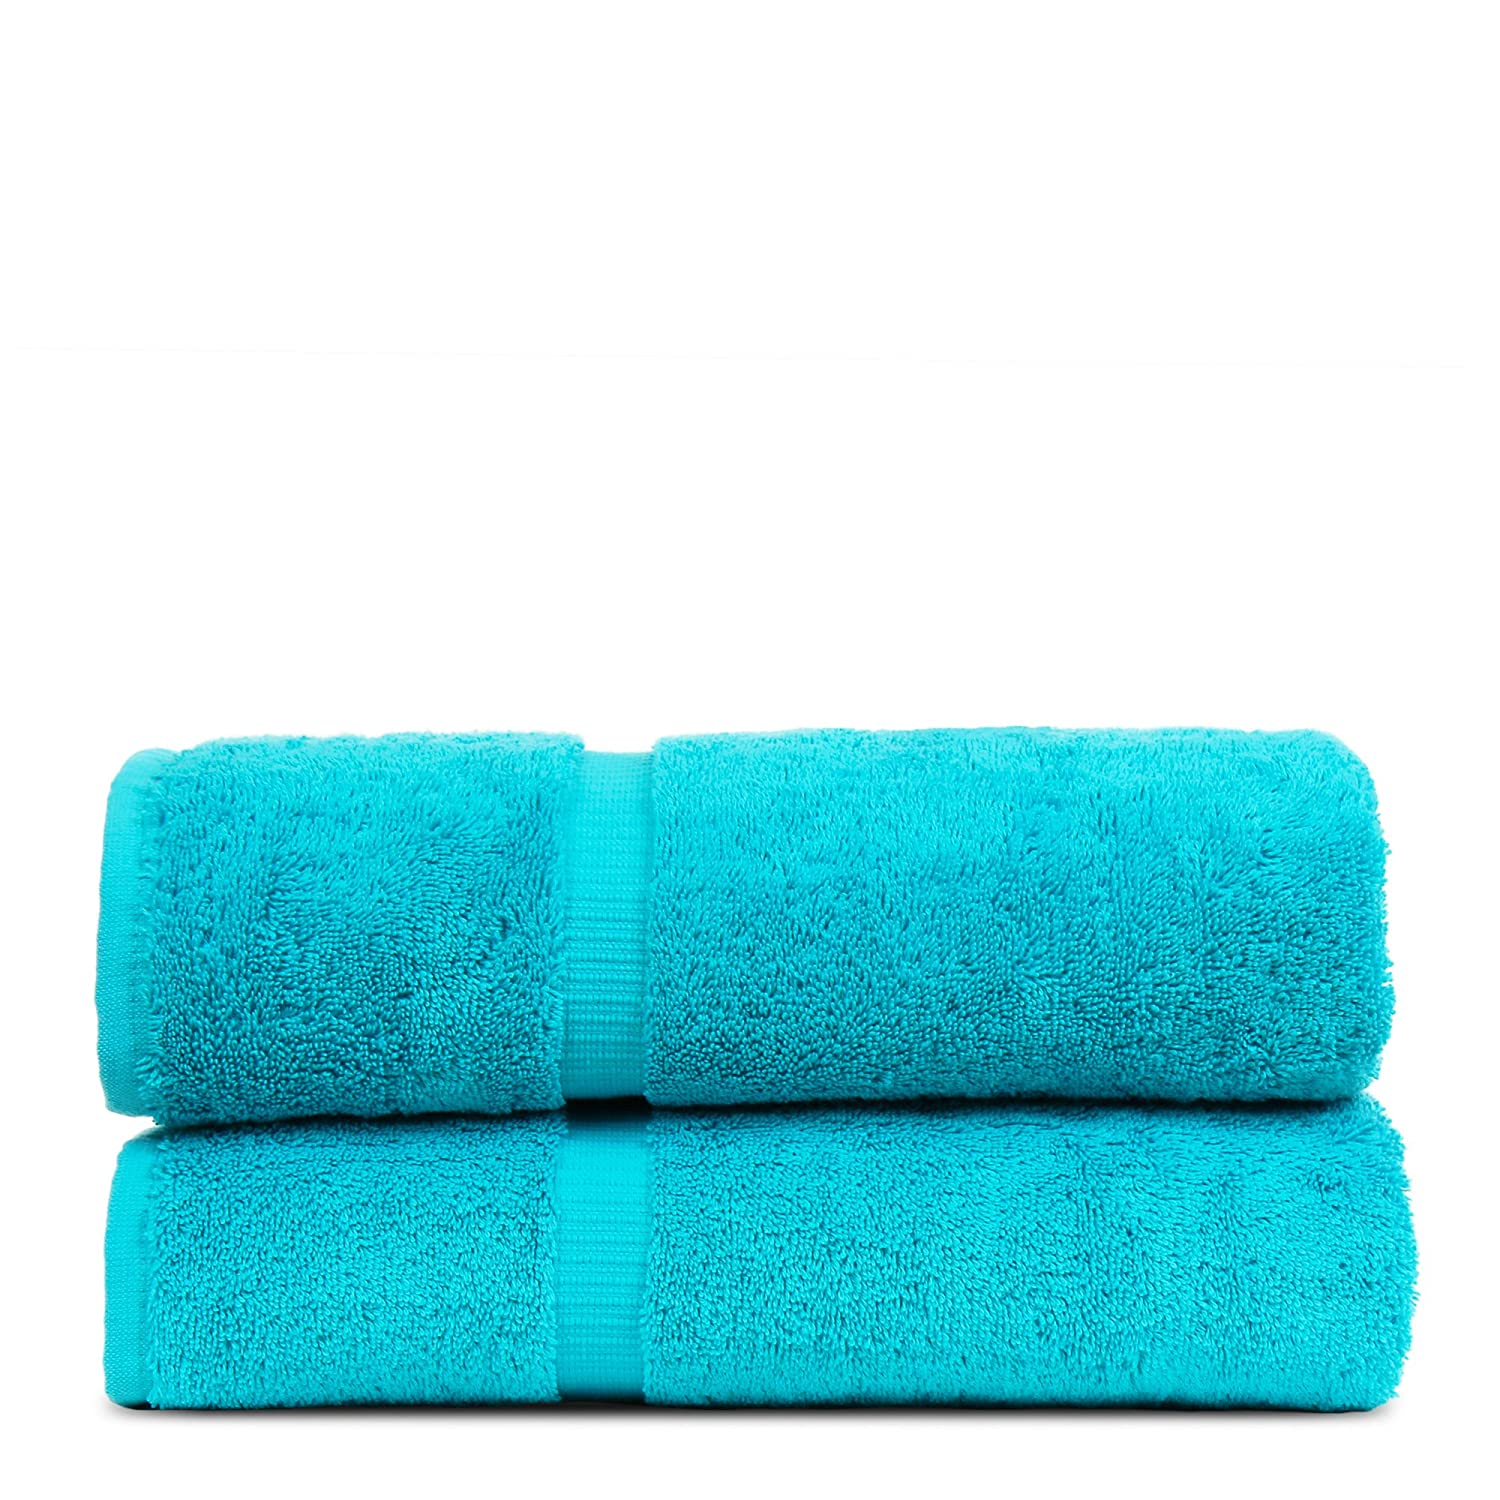 Luxury Hotel & Spa Towel Turkish Cotton Bath Towels - Cranberry - Dobby Border - Set of 2 Bare Cotton 852-114-02